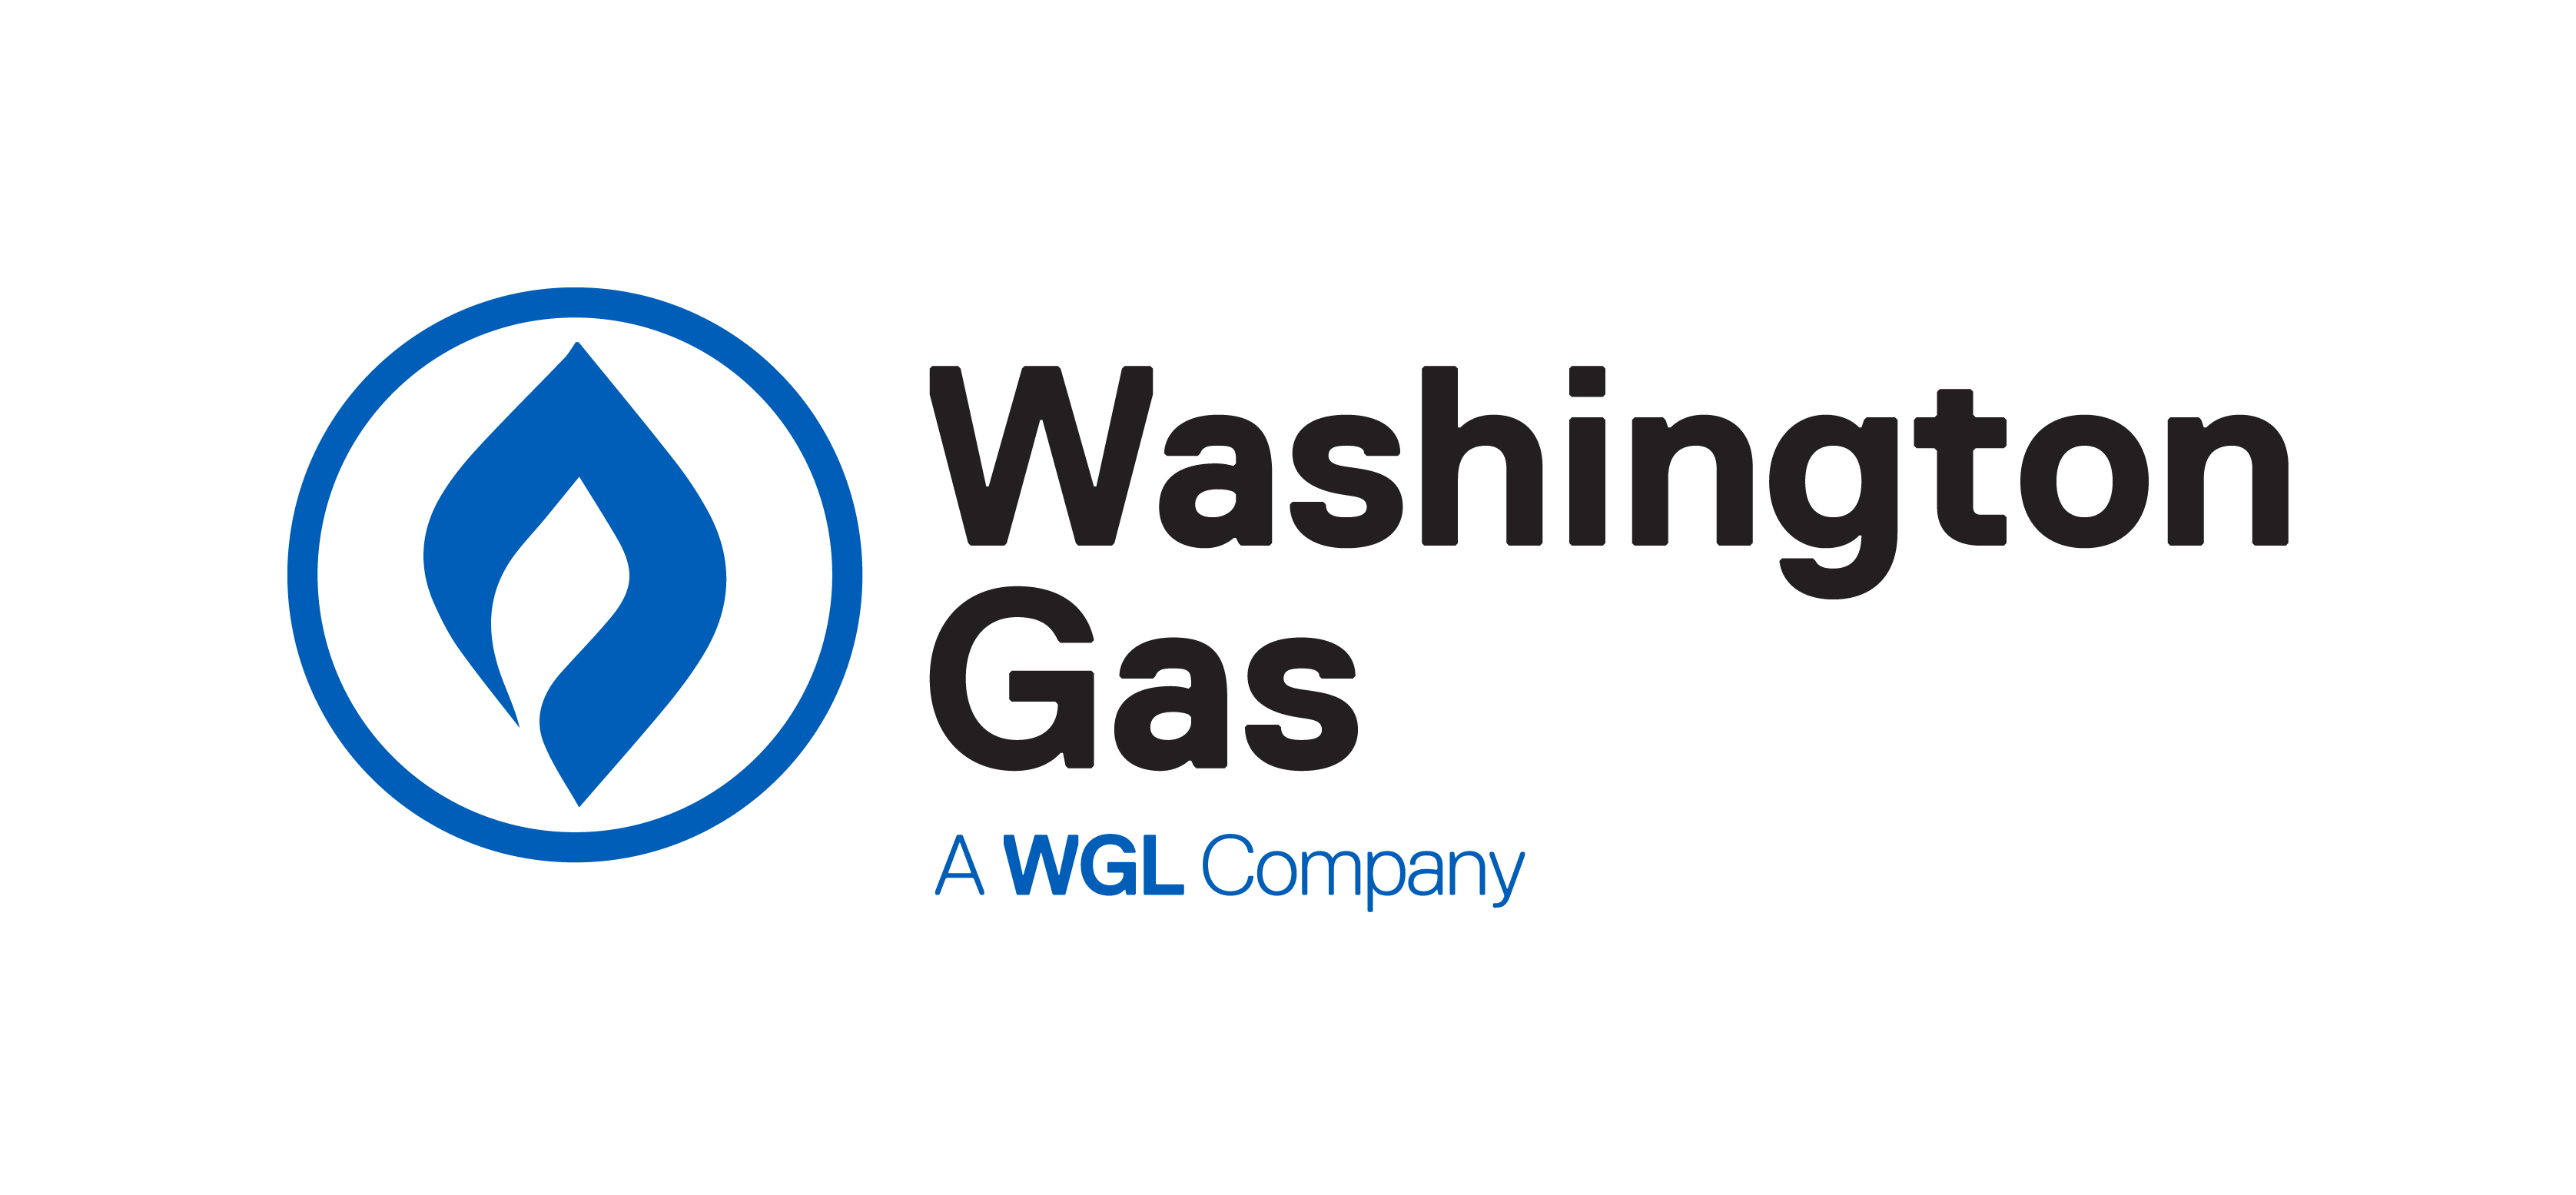 Washington Gas Unresolved Issues With Logo